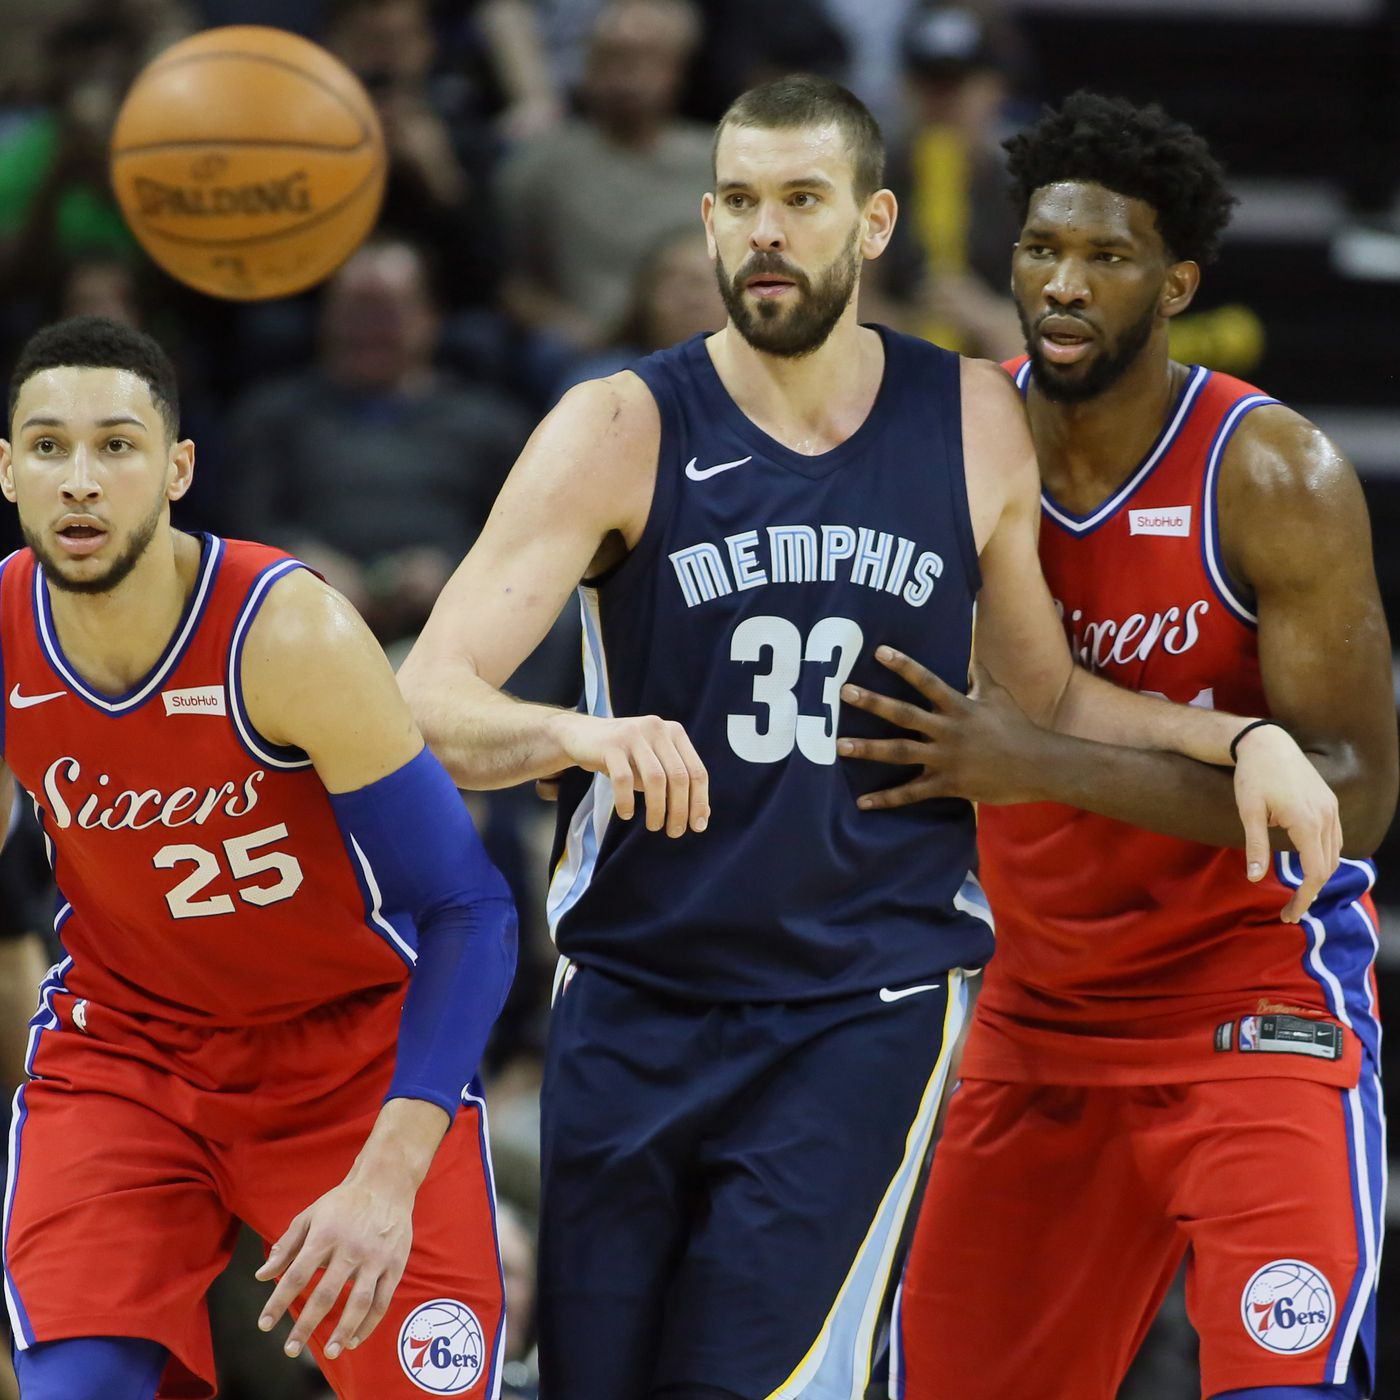 Memphis Grizzlies Vs Philadelphia 76ers Game Preview Grizzly Bear Blues